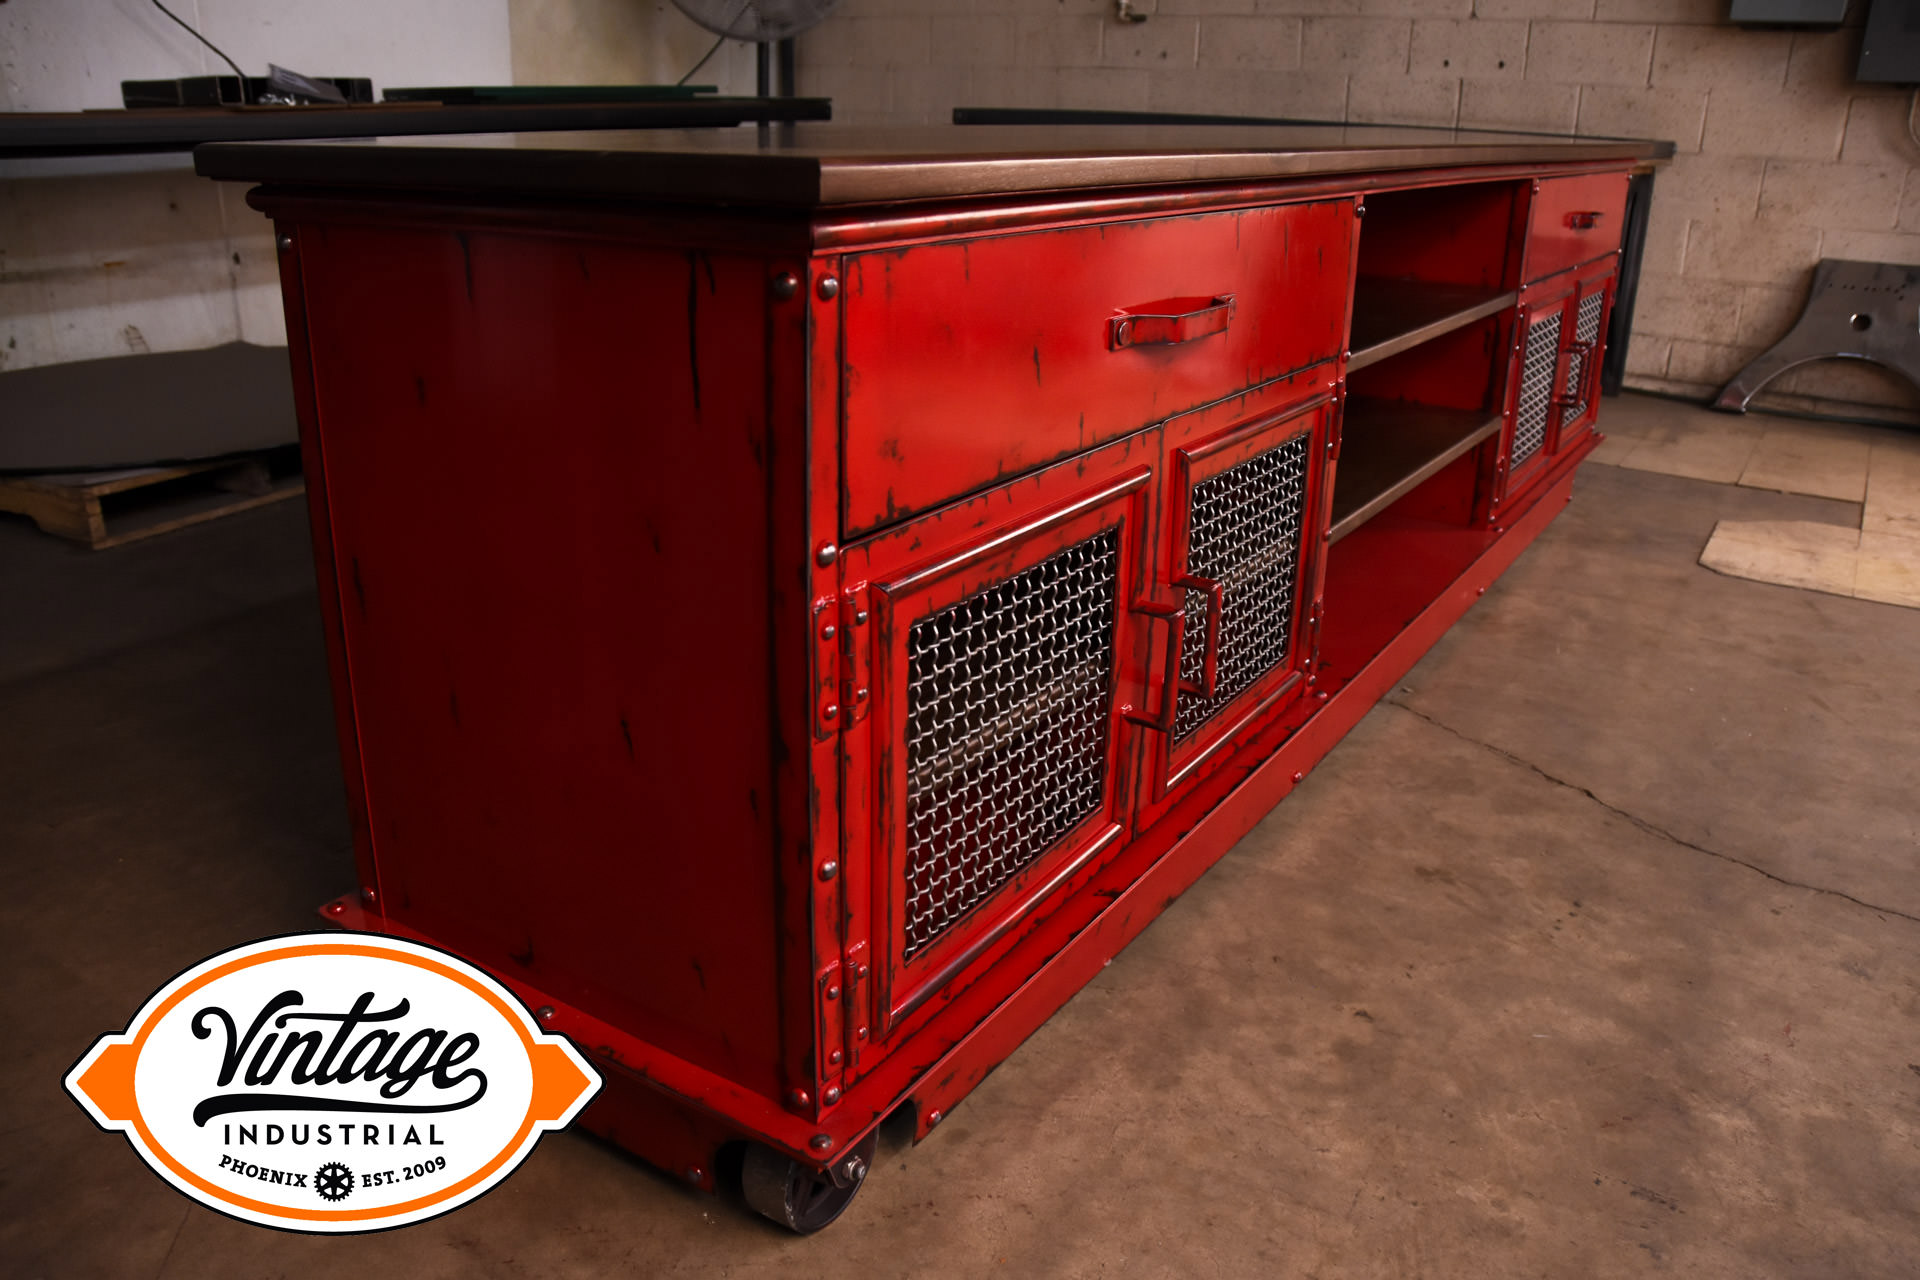 Aged Red Boxcar Ellis Console Model E56 Vintage Industrial Furniture